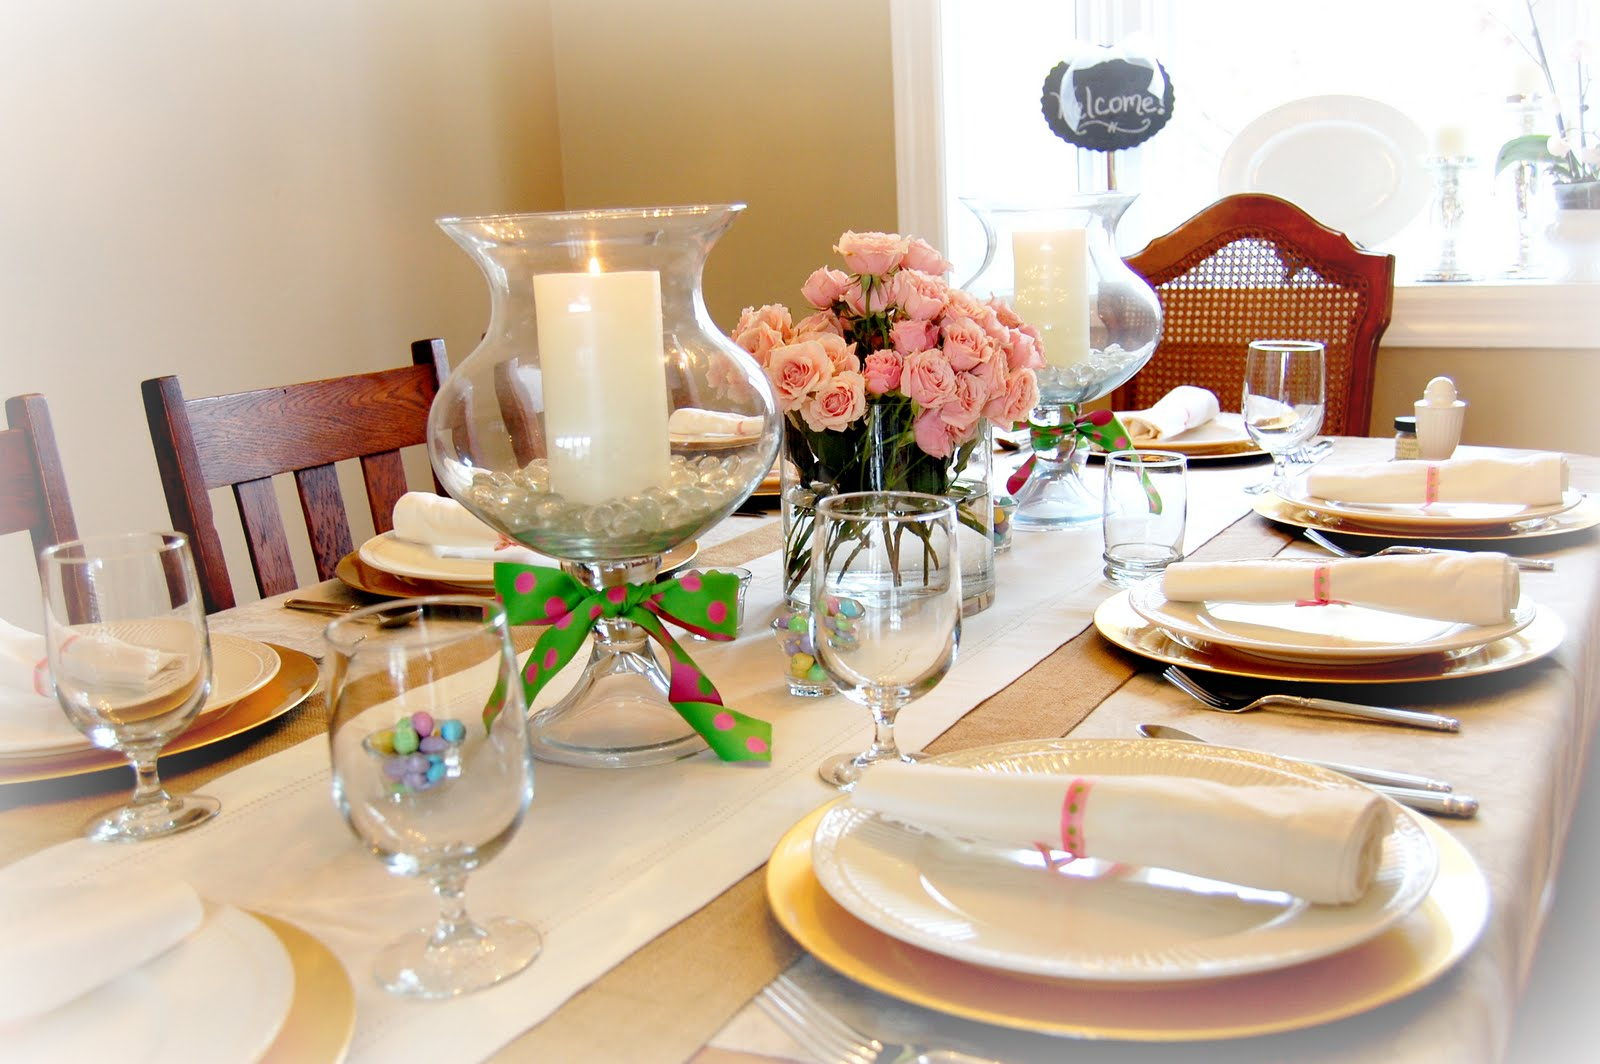 How to make dining table décor for round shape